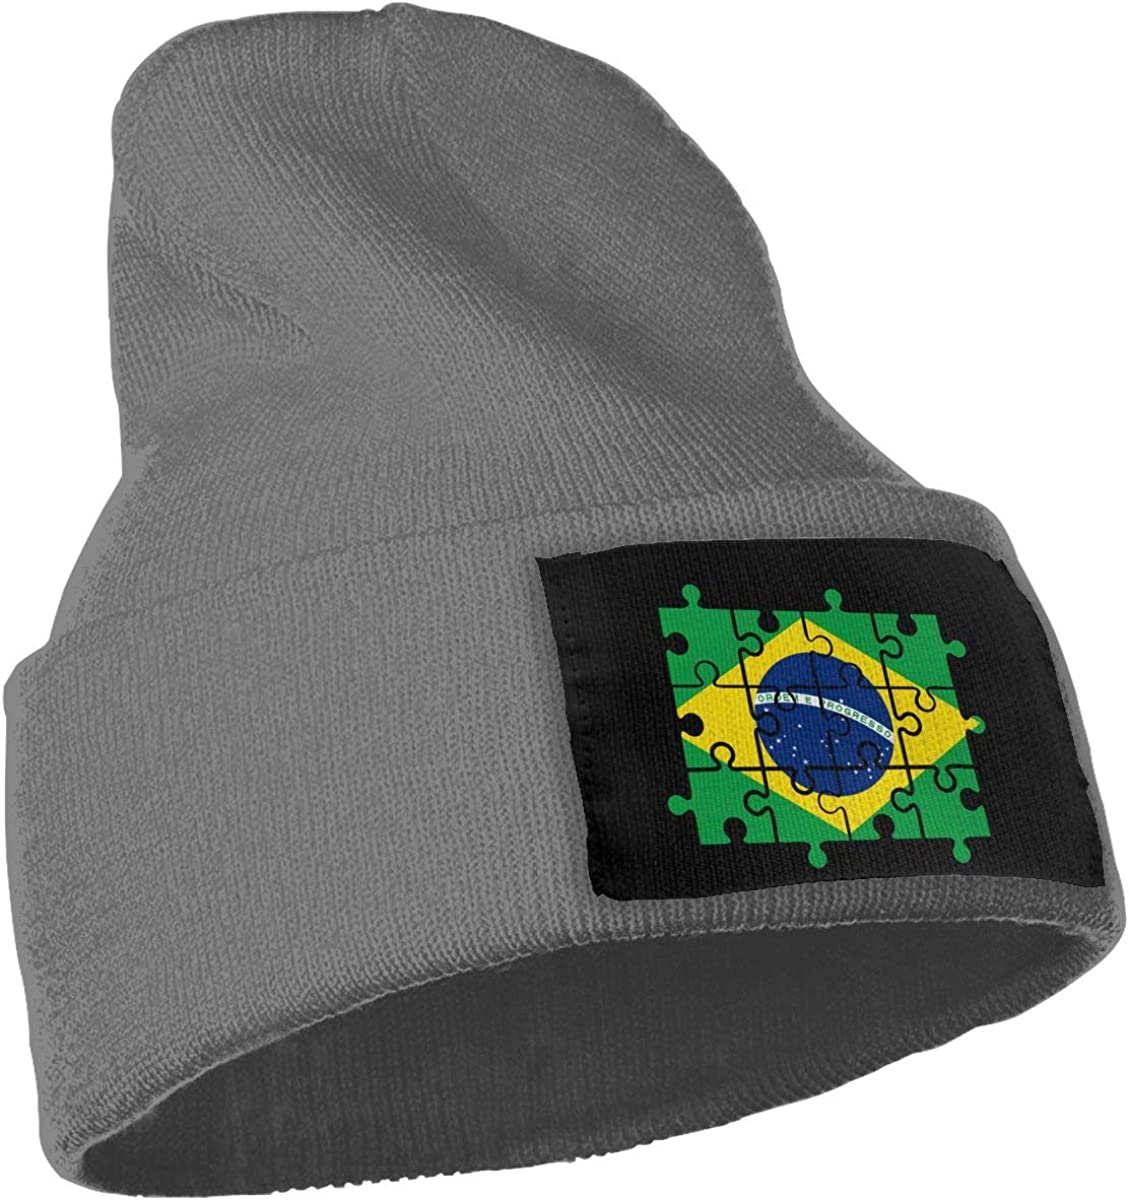 COLLJL-8 Unisex Brazil Flag Puzzle Outdoor Stretch Knit Beanies Hat Soft Winter Skull Caps